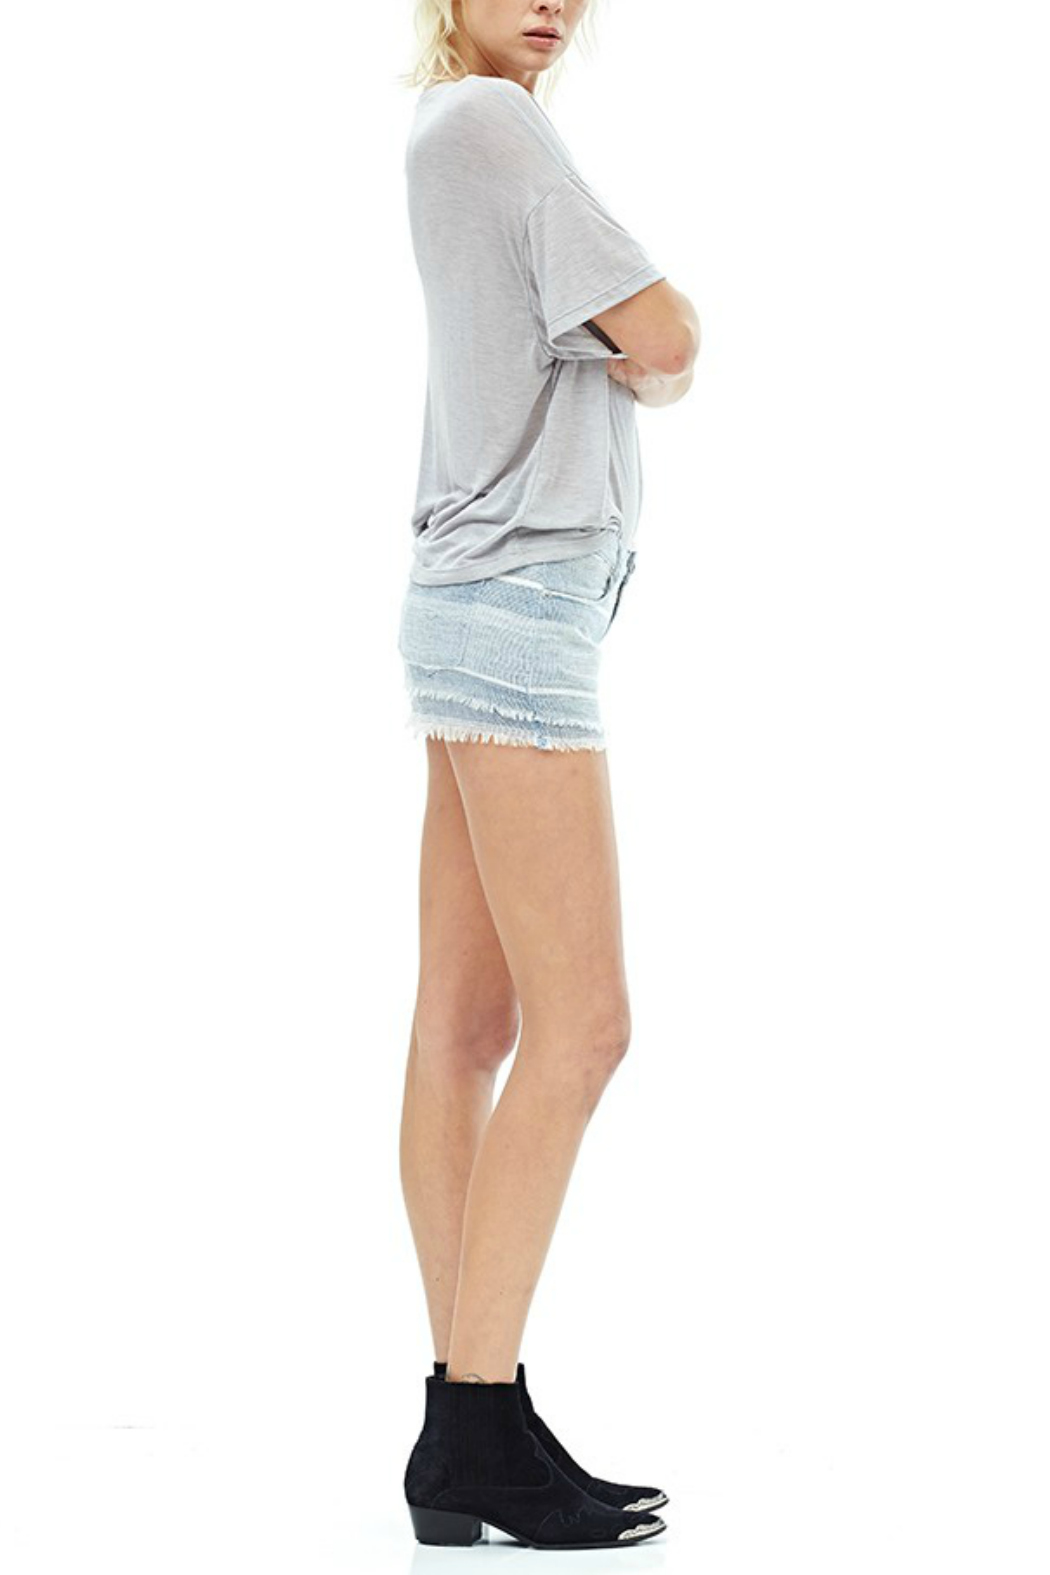 Hudson Jeans Midori Linen Short - Side Cropped Image